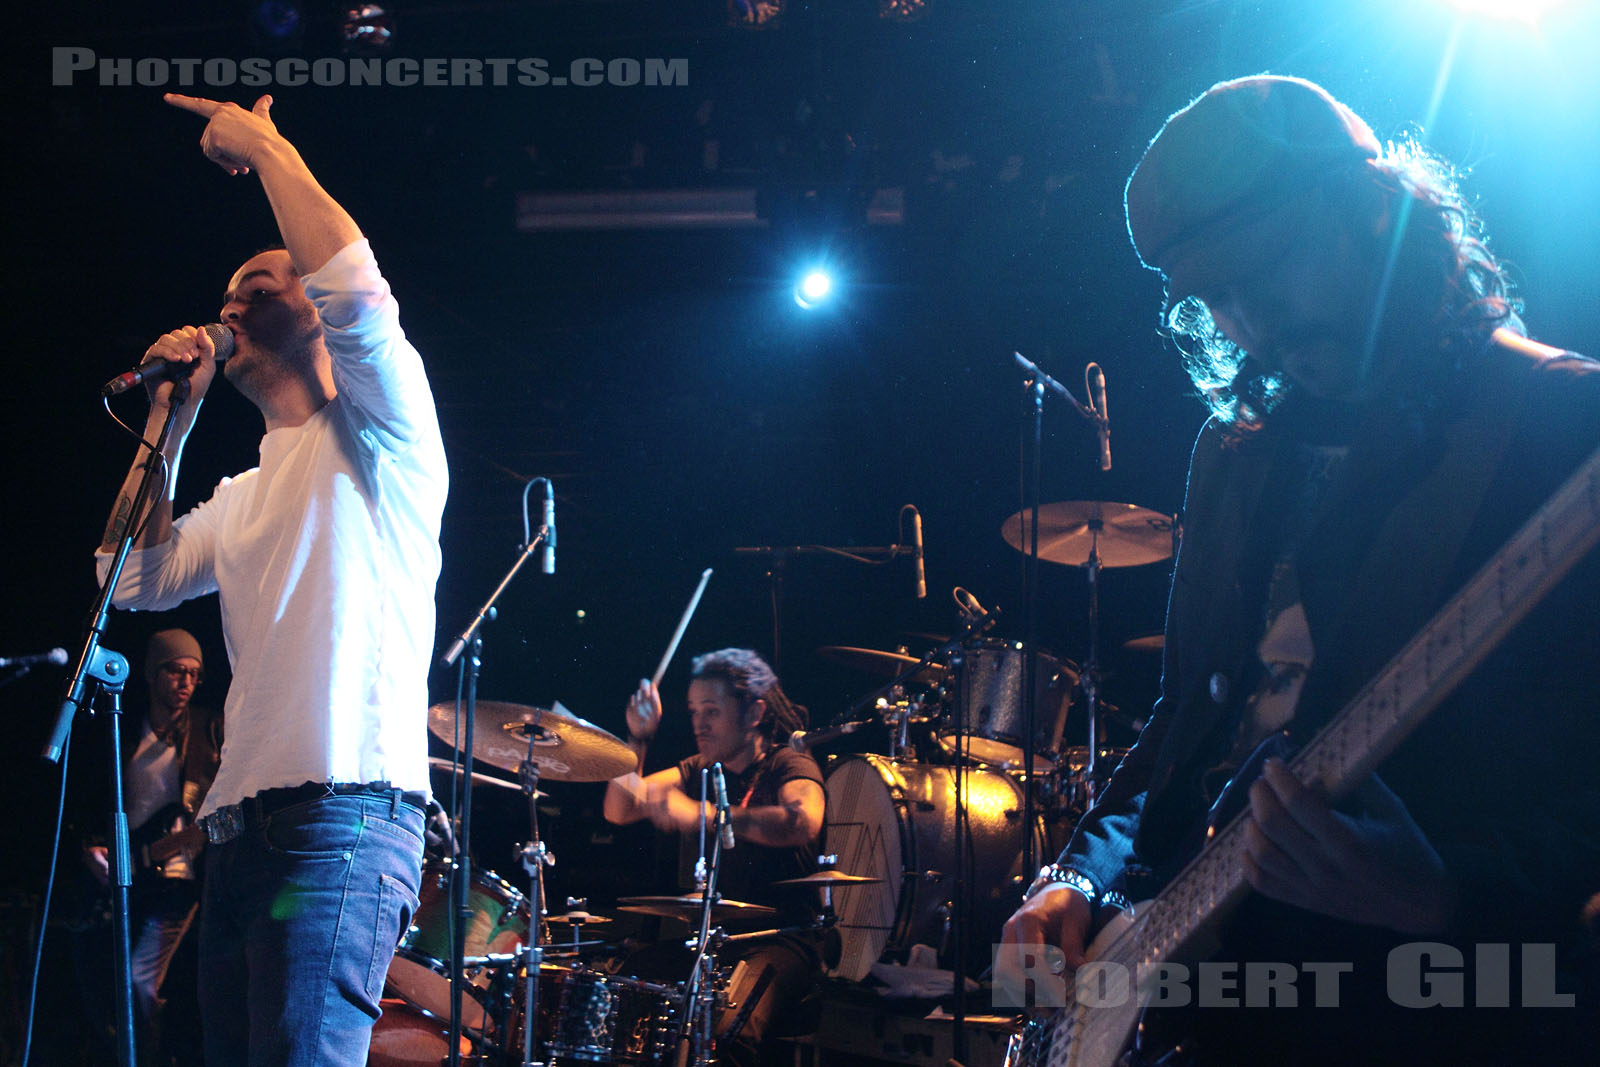 THE HALL EFFECT - 2009-10-14 - PARIS - Trabendo